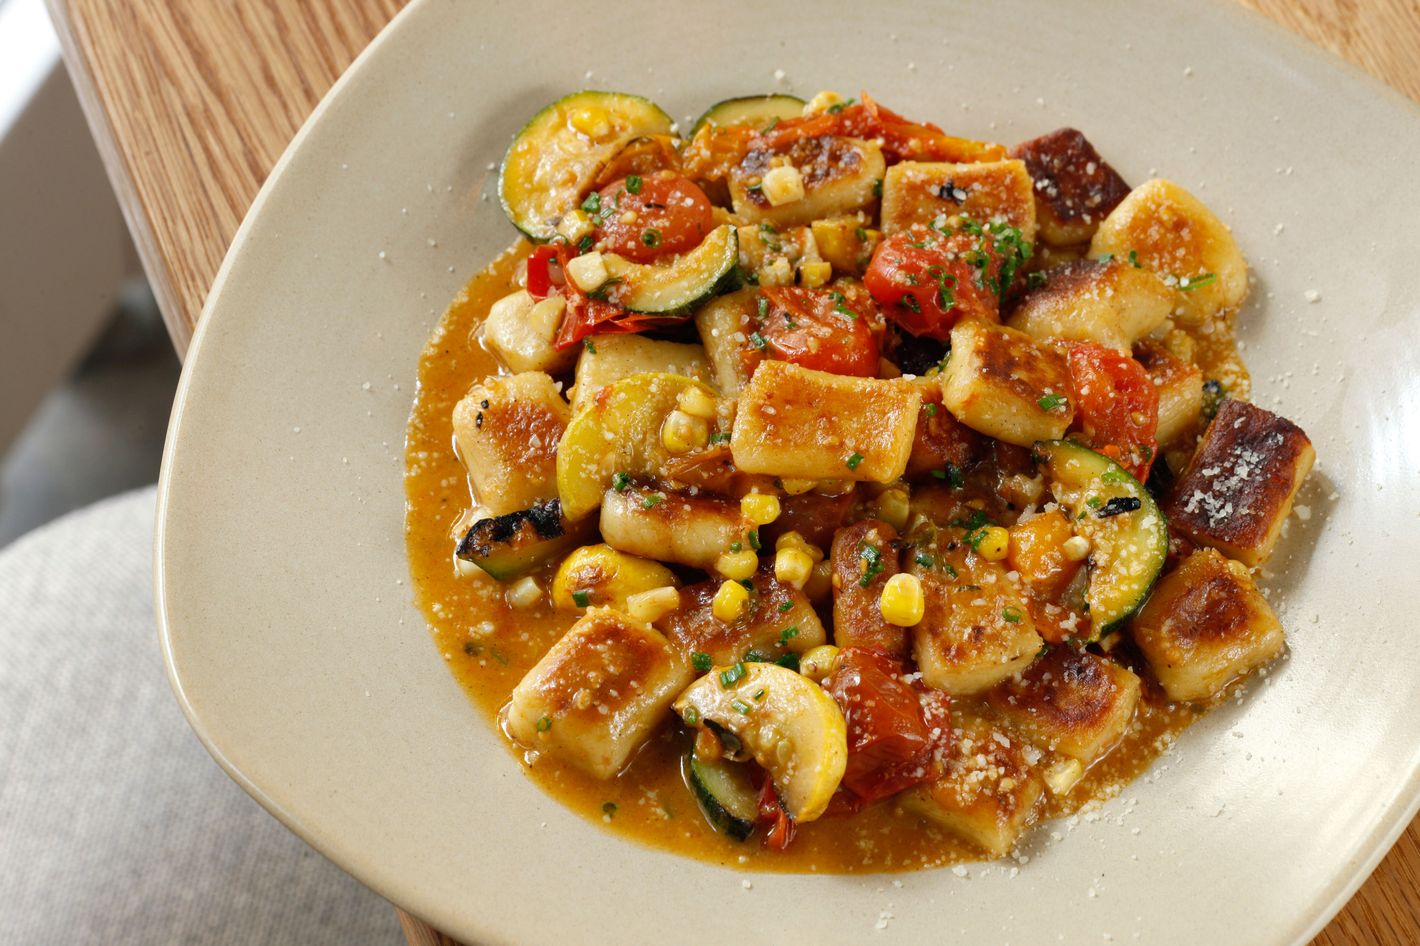 Gnocchi with summer vegetables. Photo: Melissa Hom